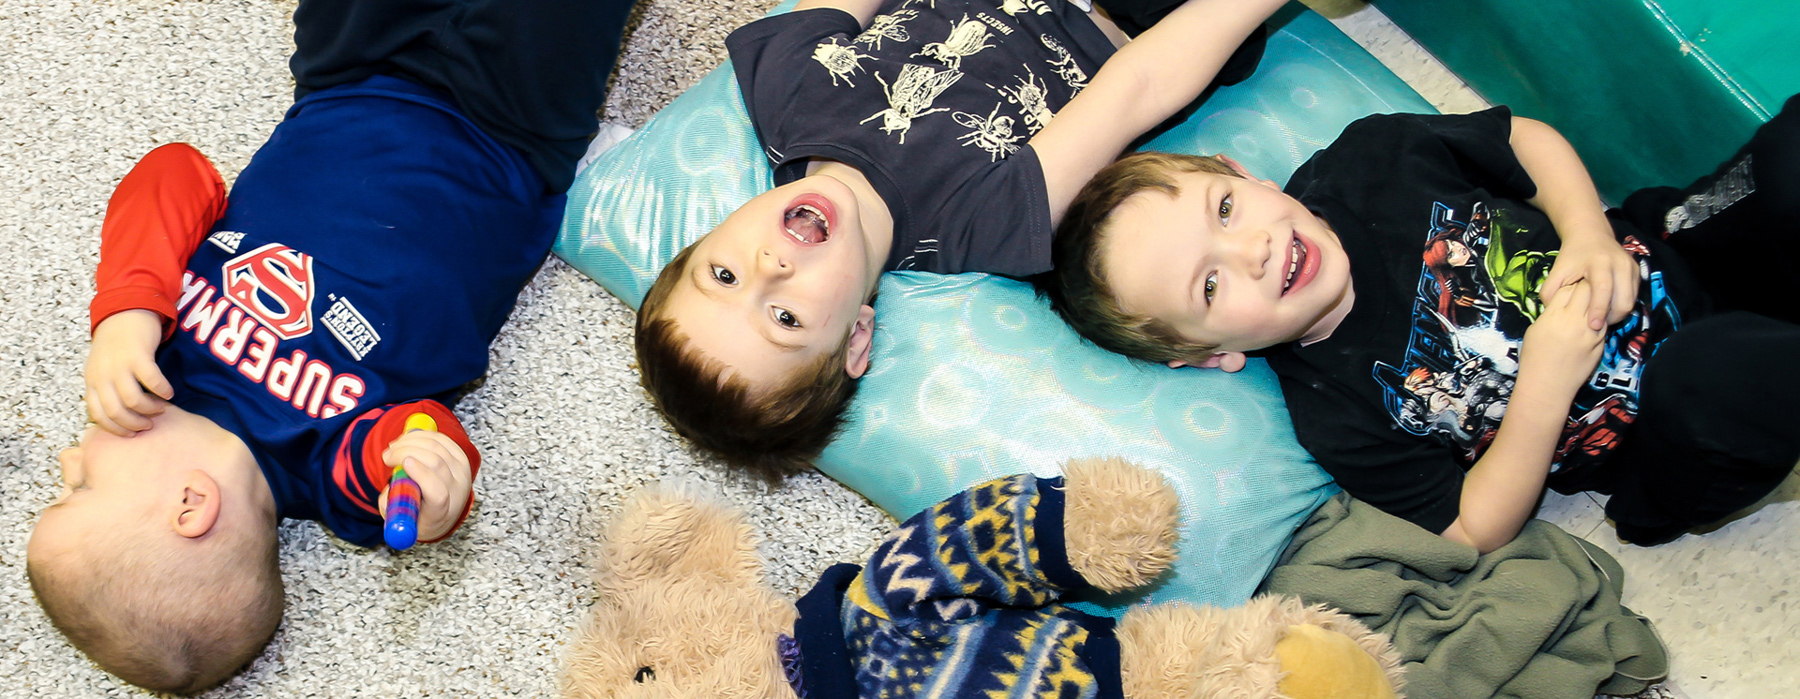 Boys lying on carpet